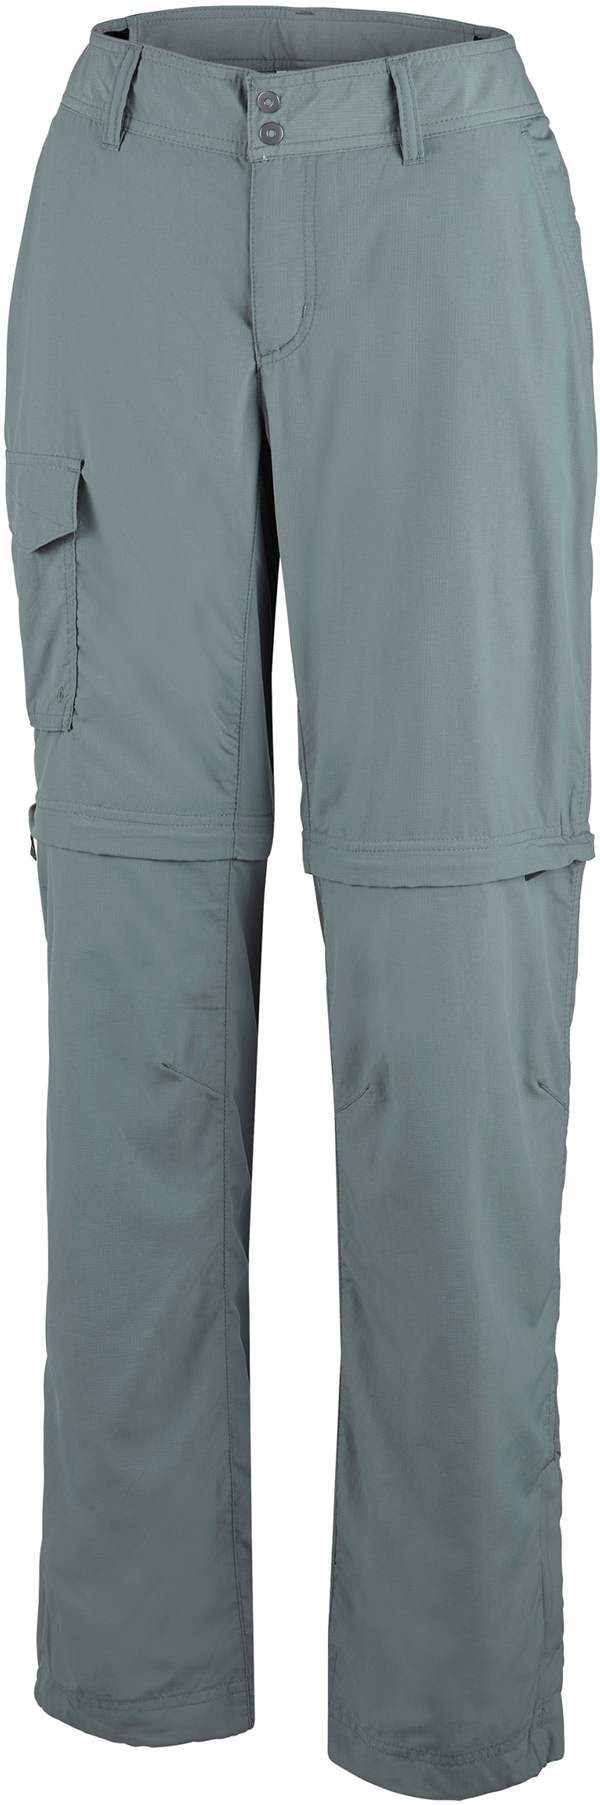 Columbia Silver Ridge Convertible Pants W